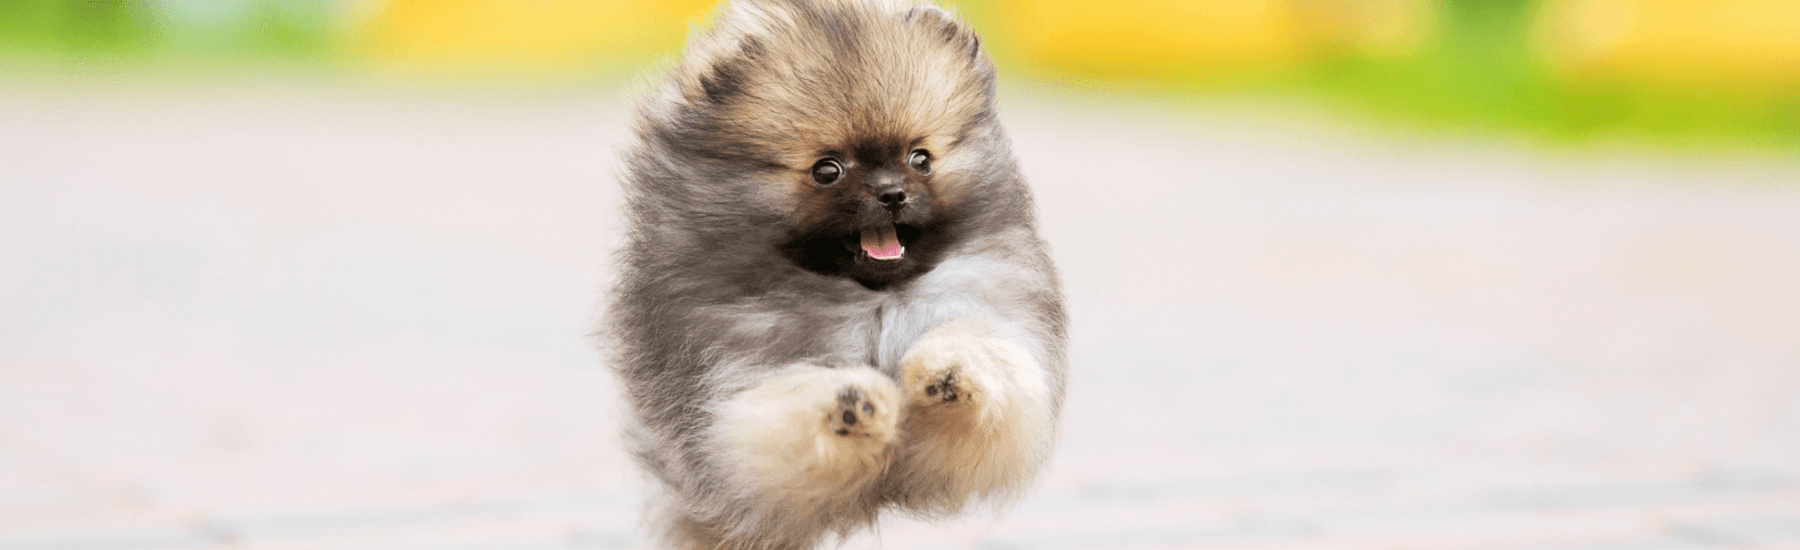 Cute Pomeranian dog running with their tongue out